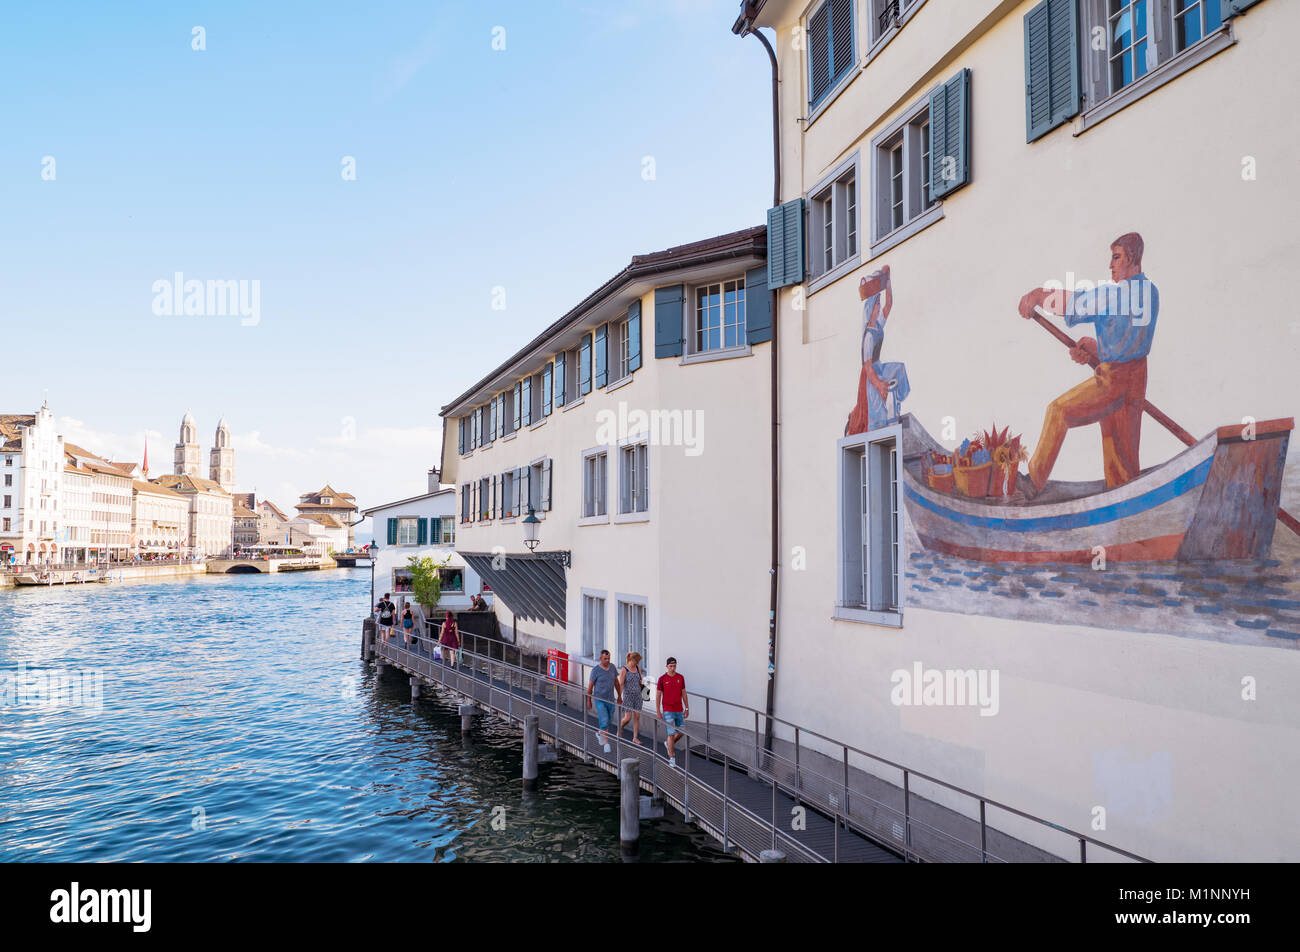 Zurich, Switzerland, A house with painting on the Limmat river bank - Stock Image